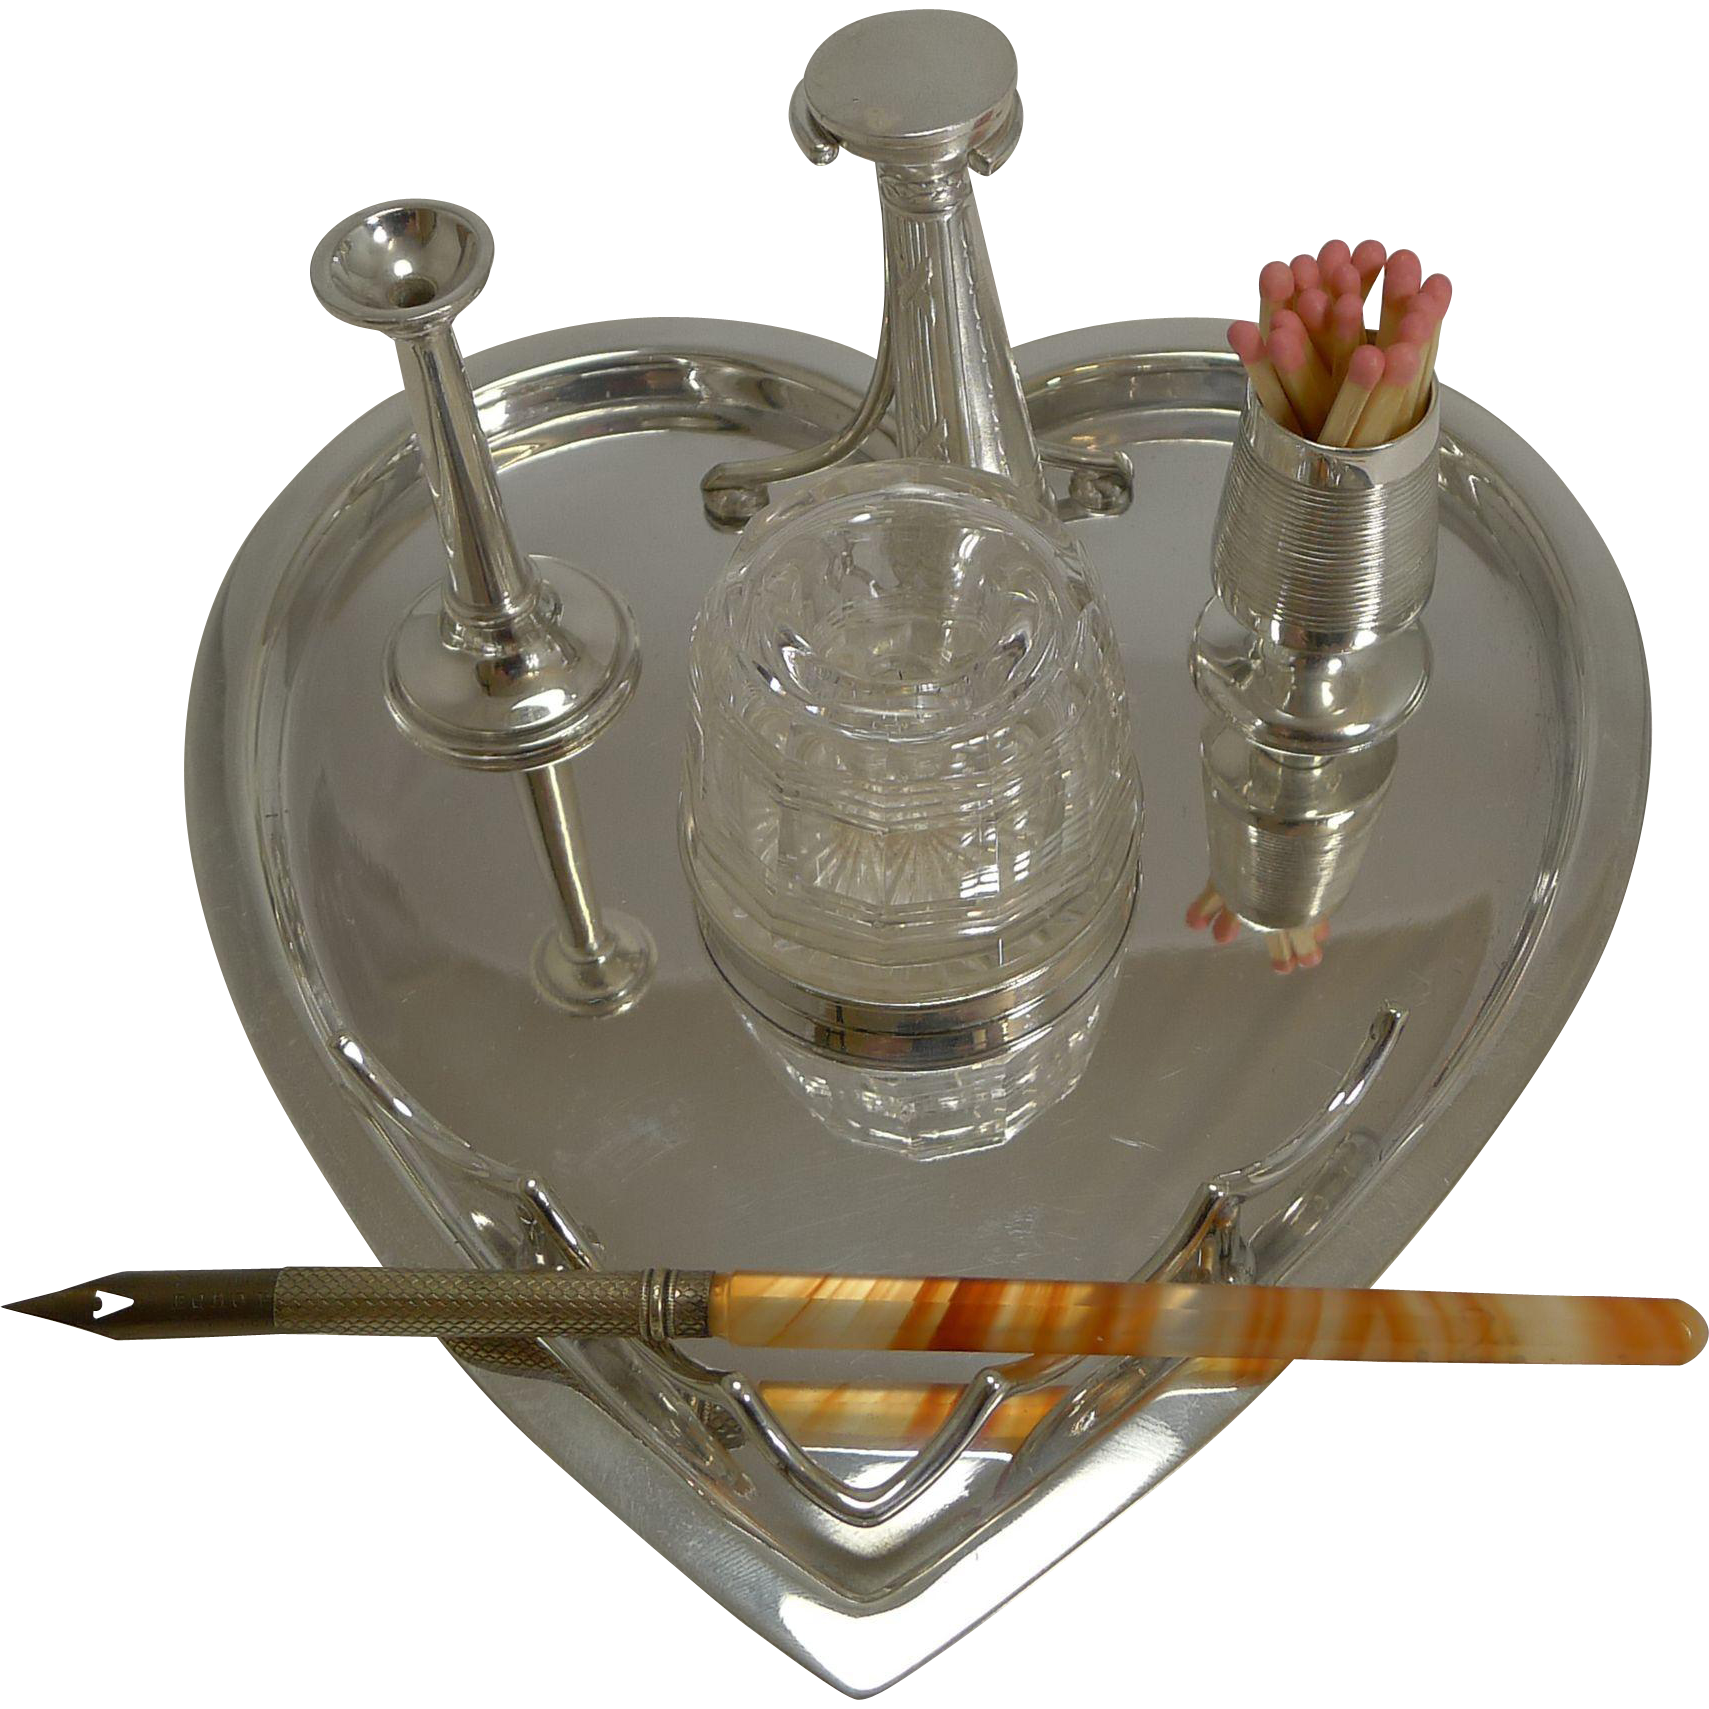 Antique Silver Plate Heart Shaped Desk Set by Hukin and Heath c.1900